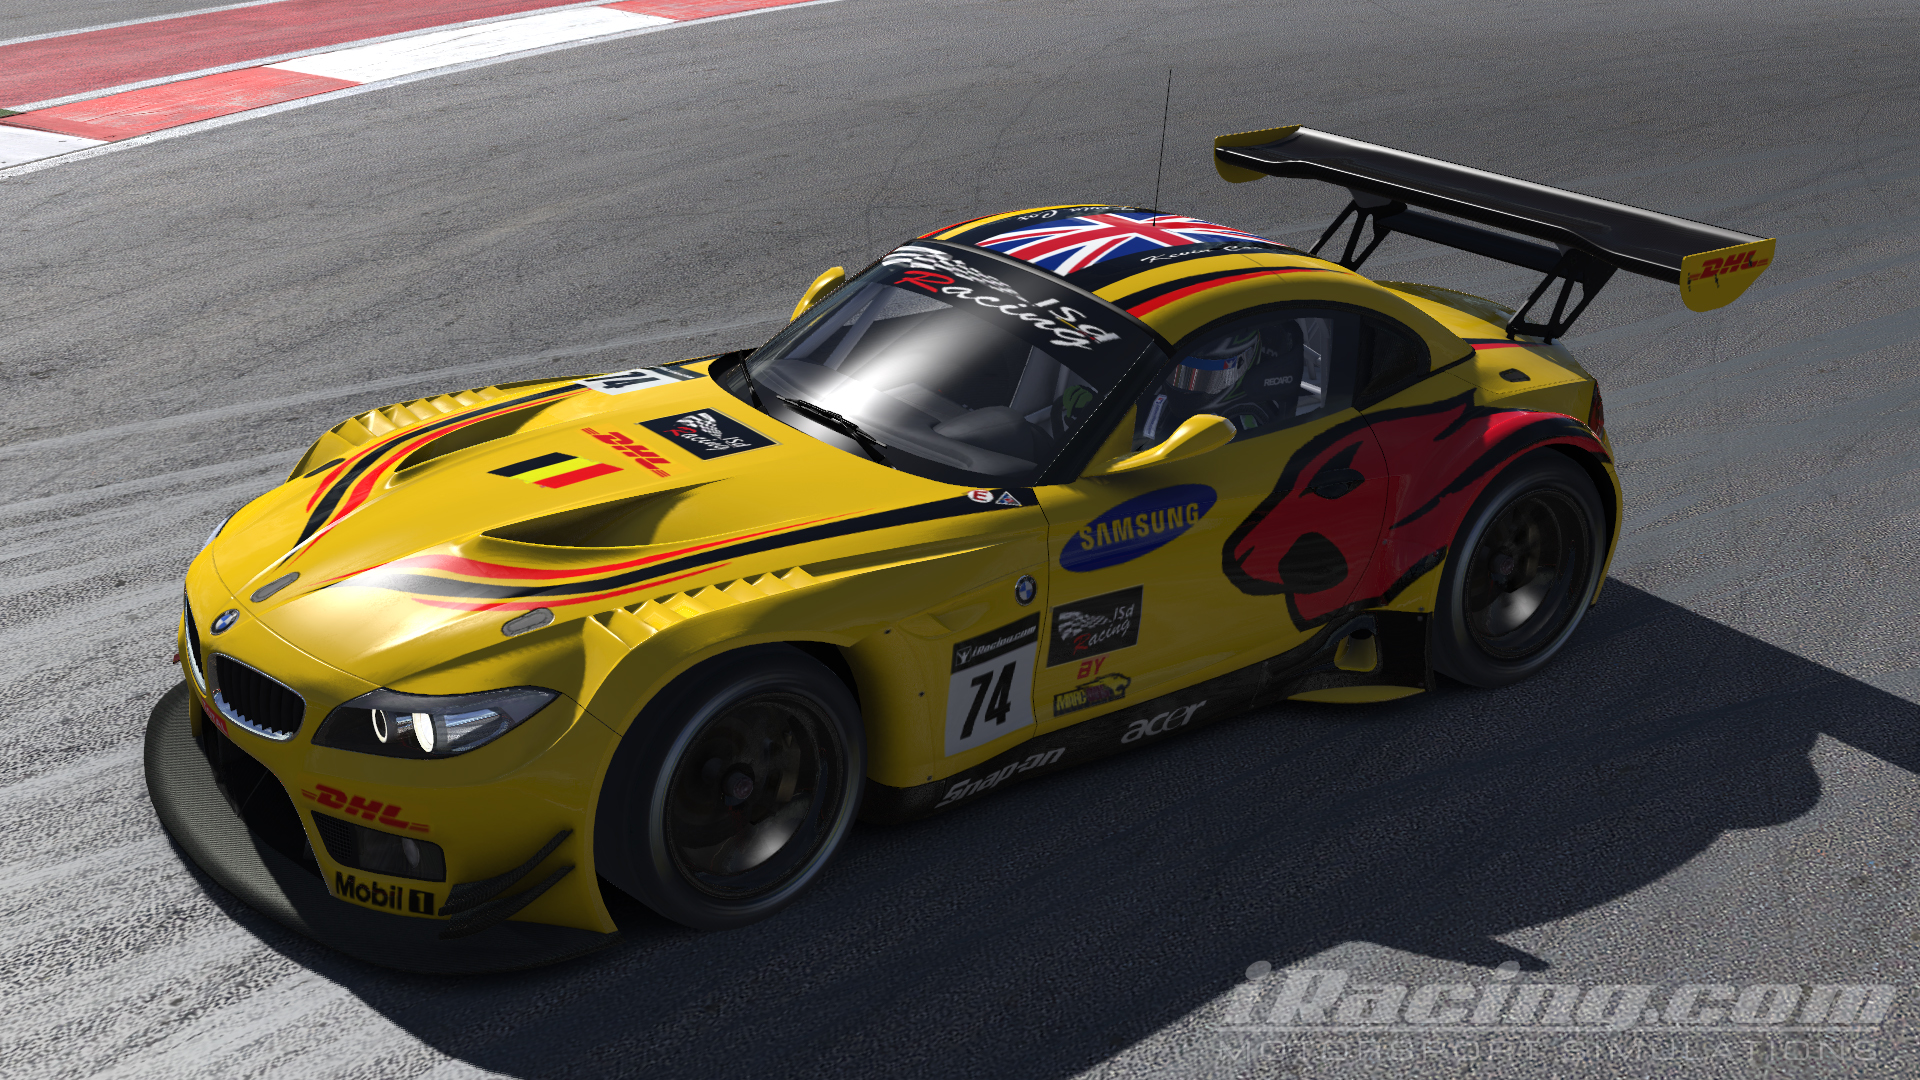 Photo Lsd Racing Bmw Z4 Gt3 In The Album Other Racing Games By